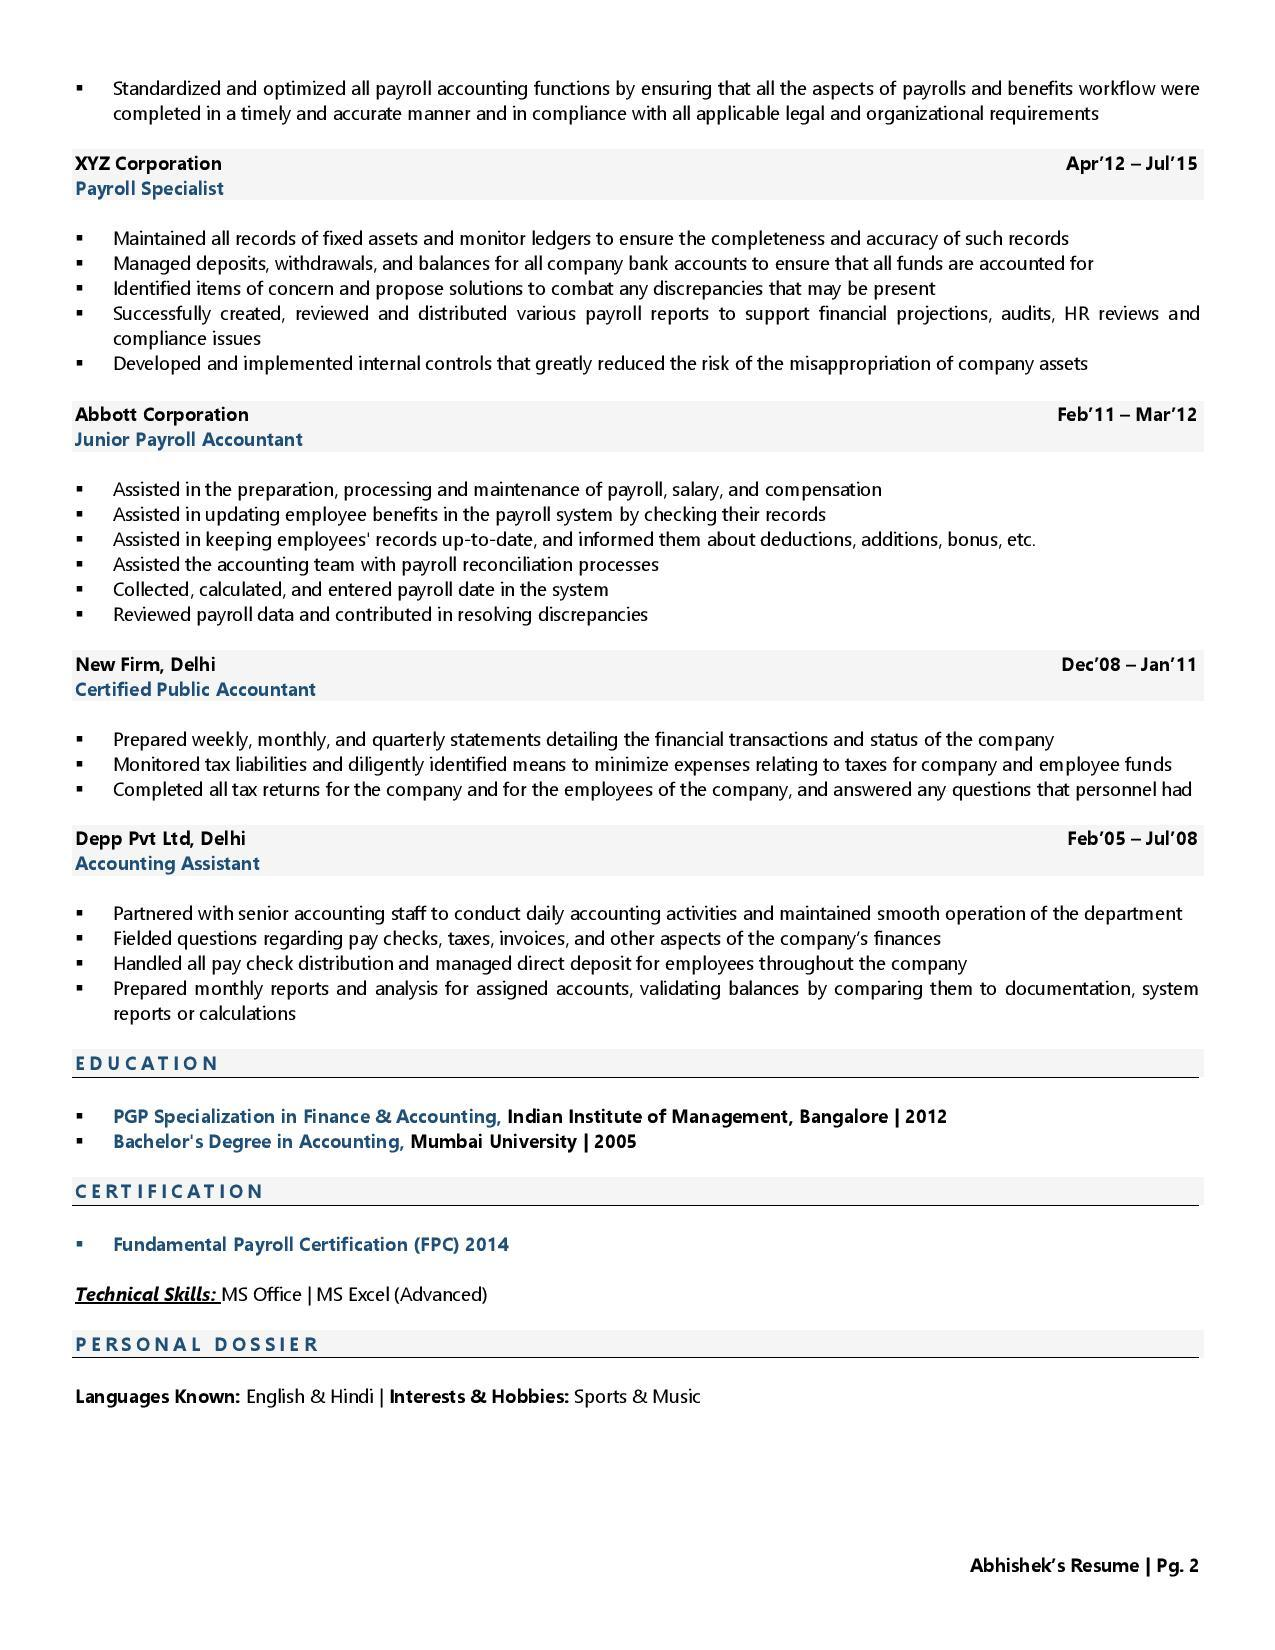 Payroll Accountant - Resume Example & Template